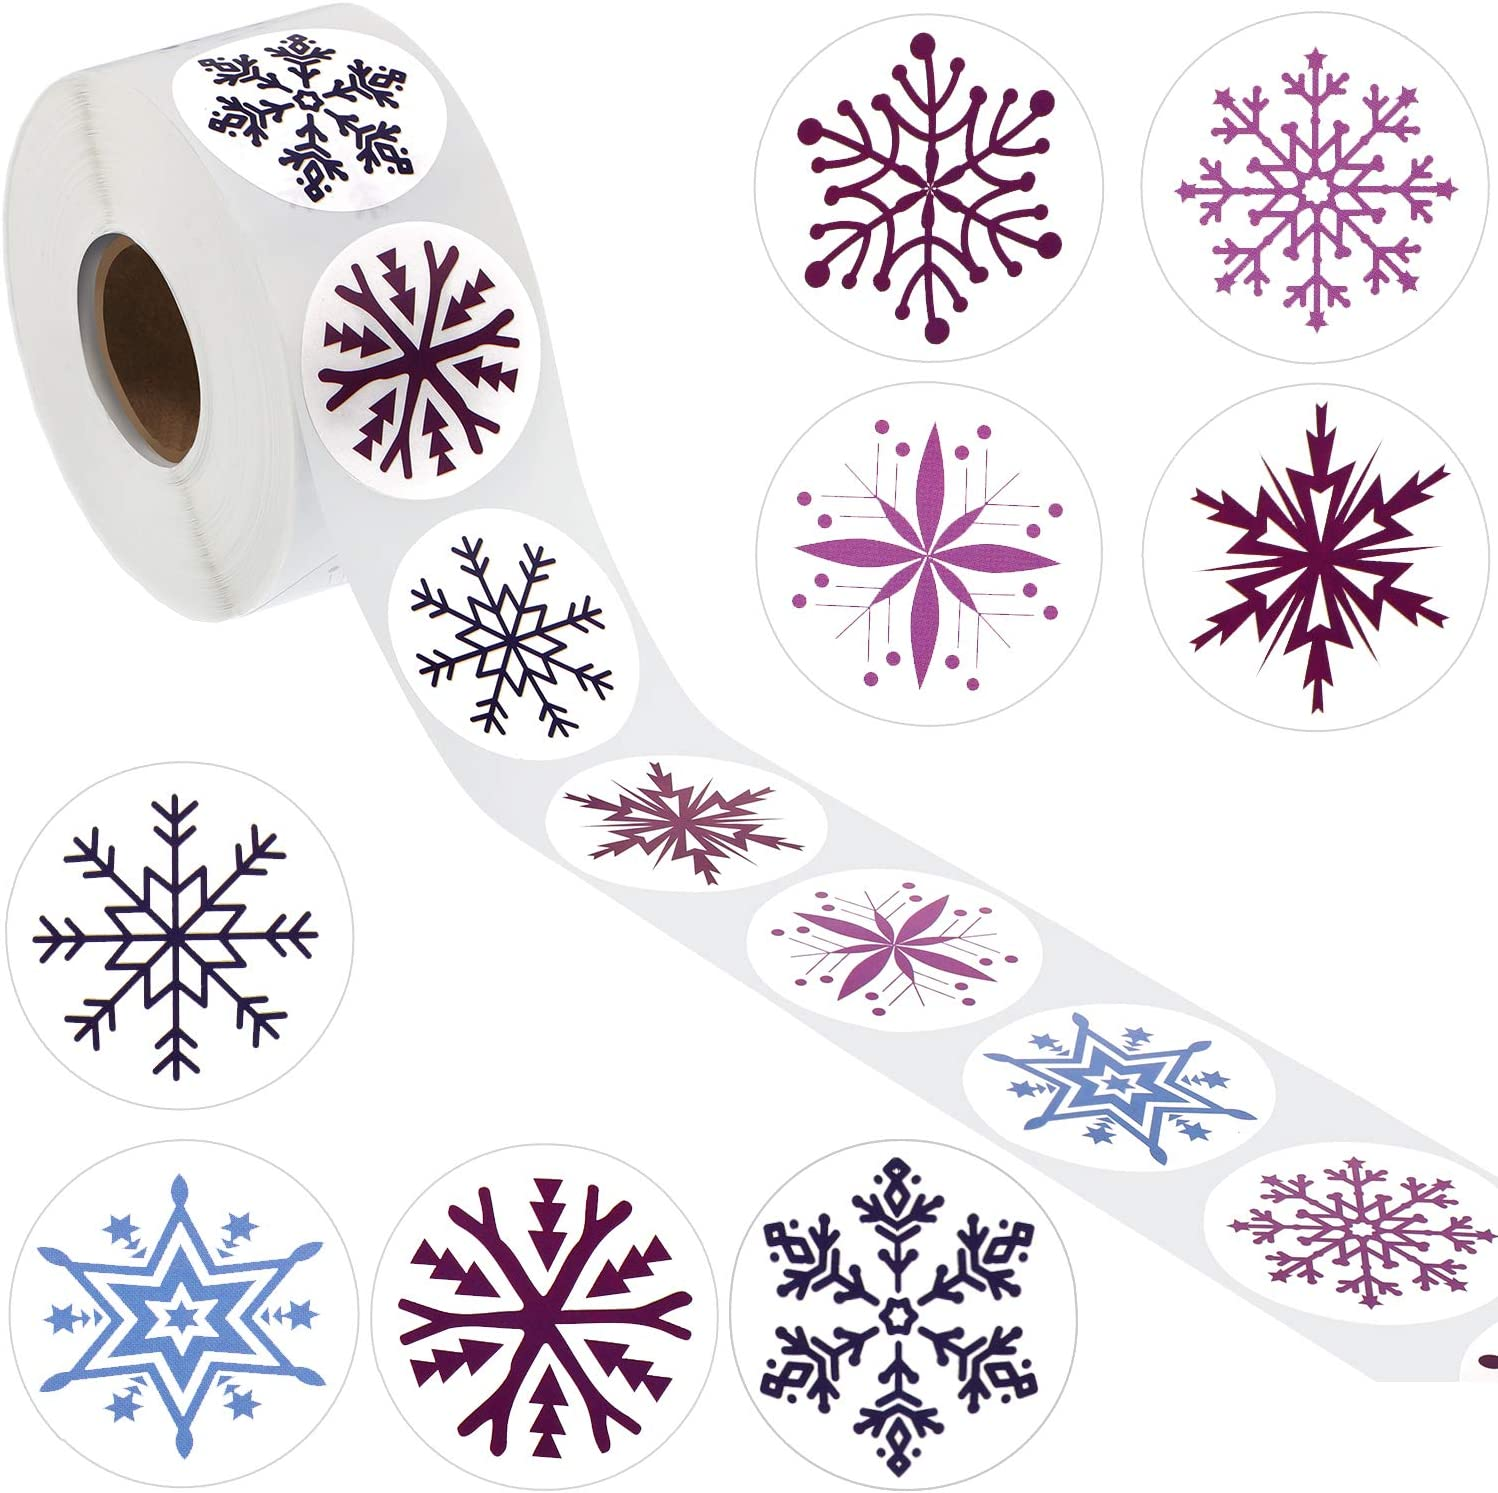 Outus 800 Pieces Snowflake Stickers Christmas Snowflake Decals Winter Snowflake Sealing Stickers Round Circle Labels for Christmas Decoration 1 Roll, 8 Styles